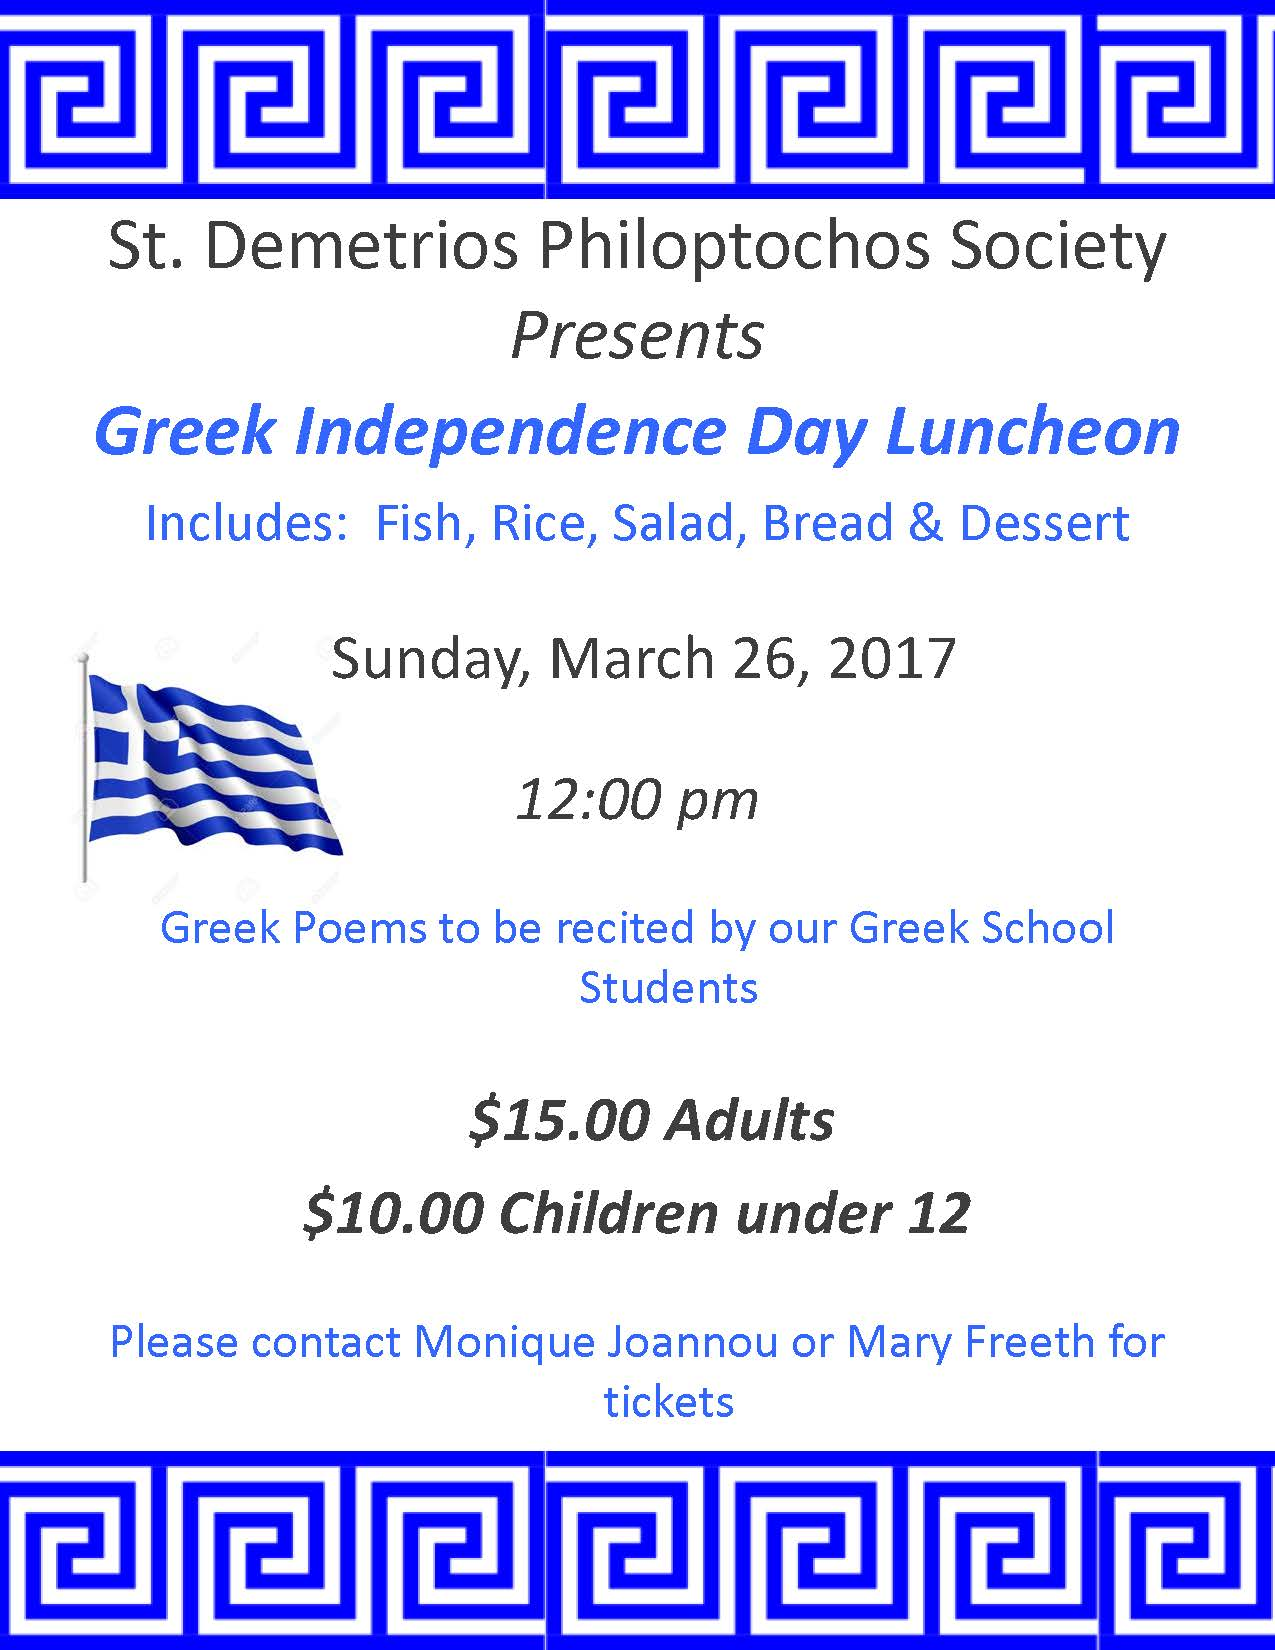 Greek Independence Day Luncheon